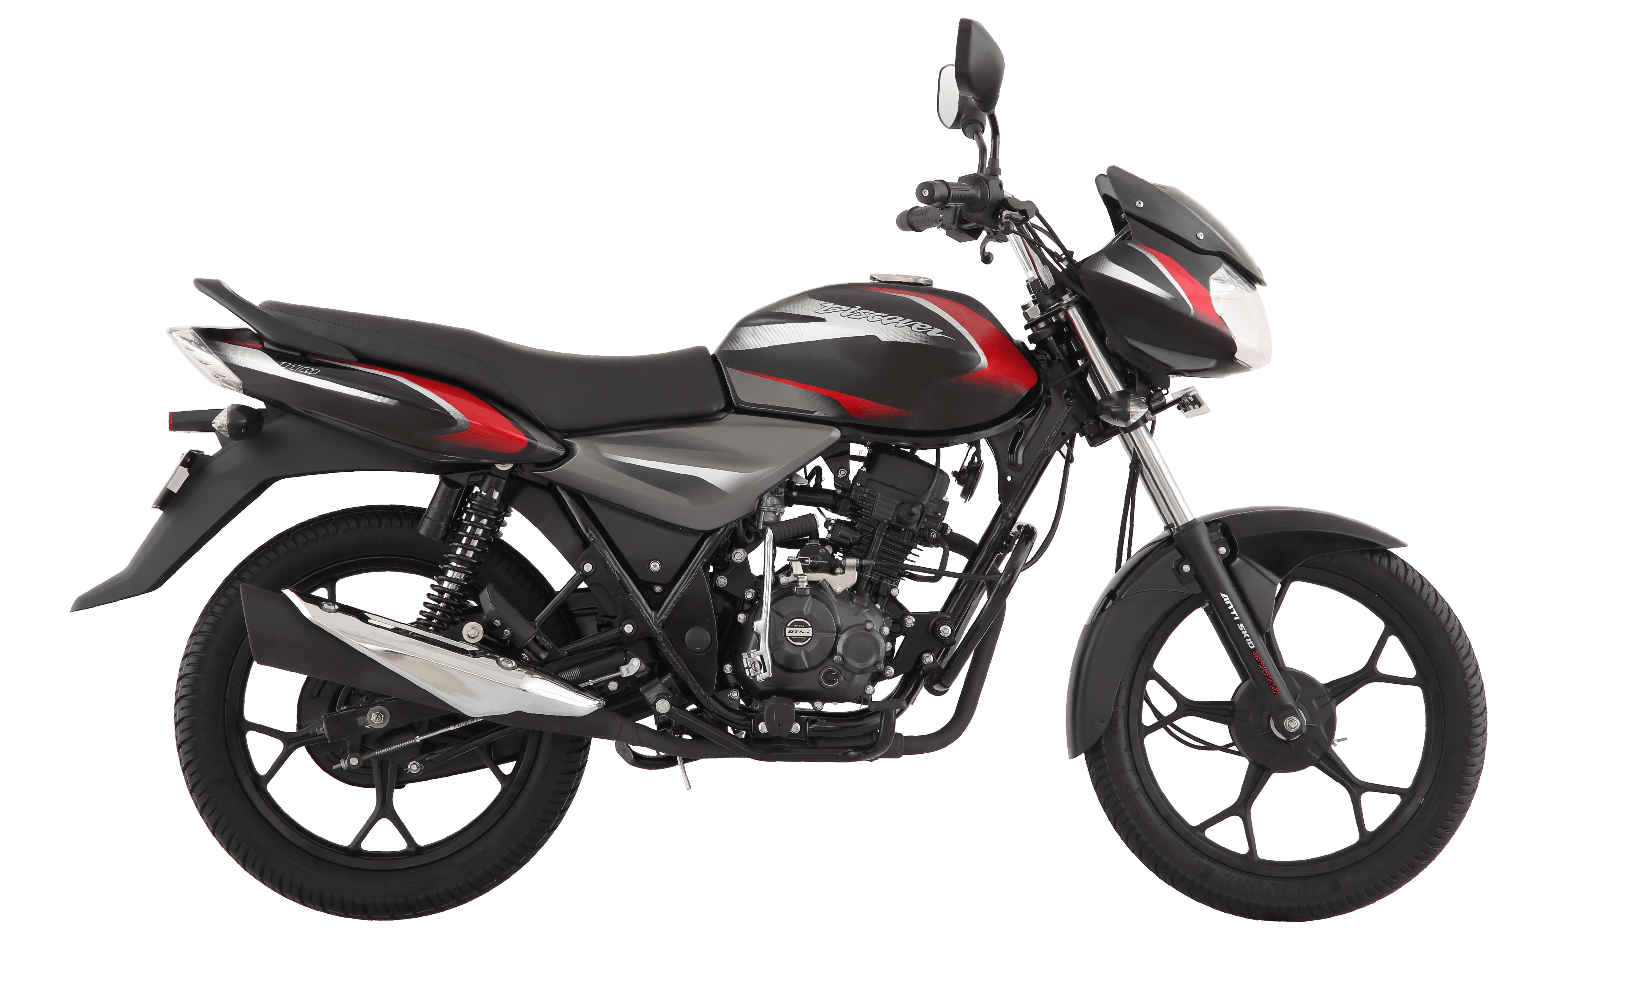 Black and Red Color Bajaj Discover 125cc Drum Motorcycle with DTSI Engine side view